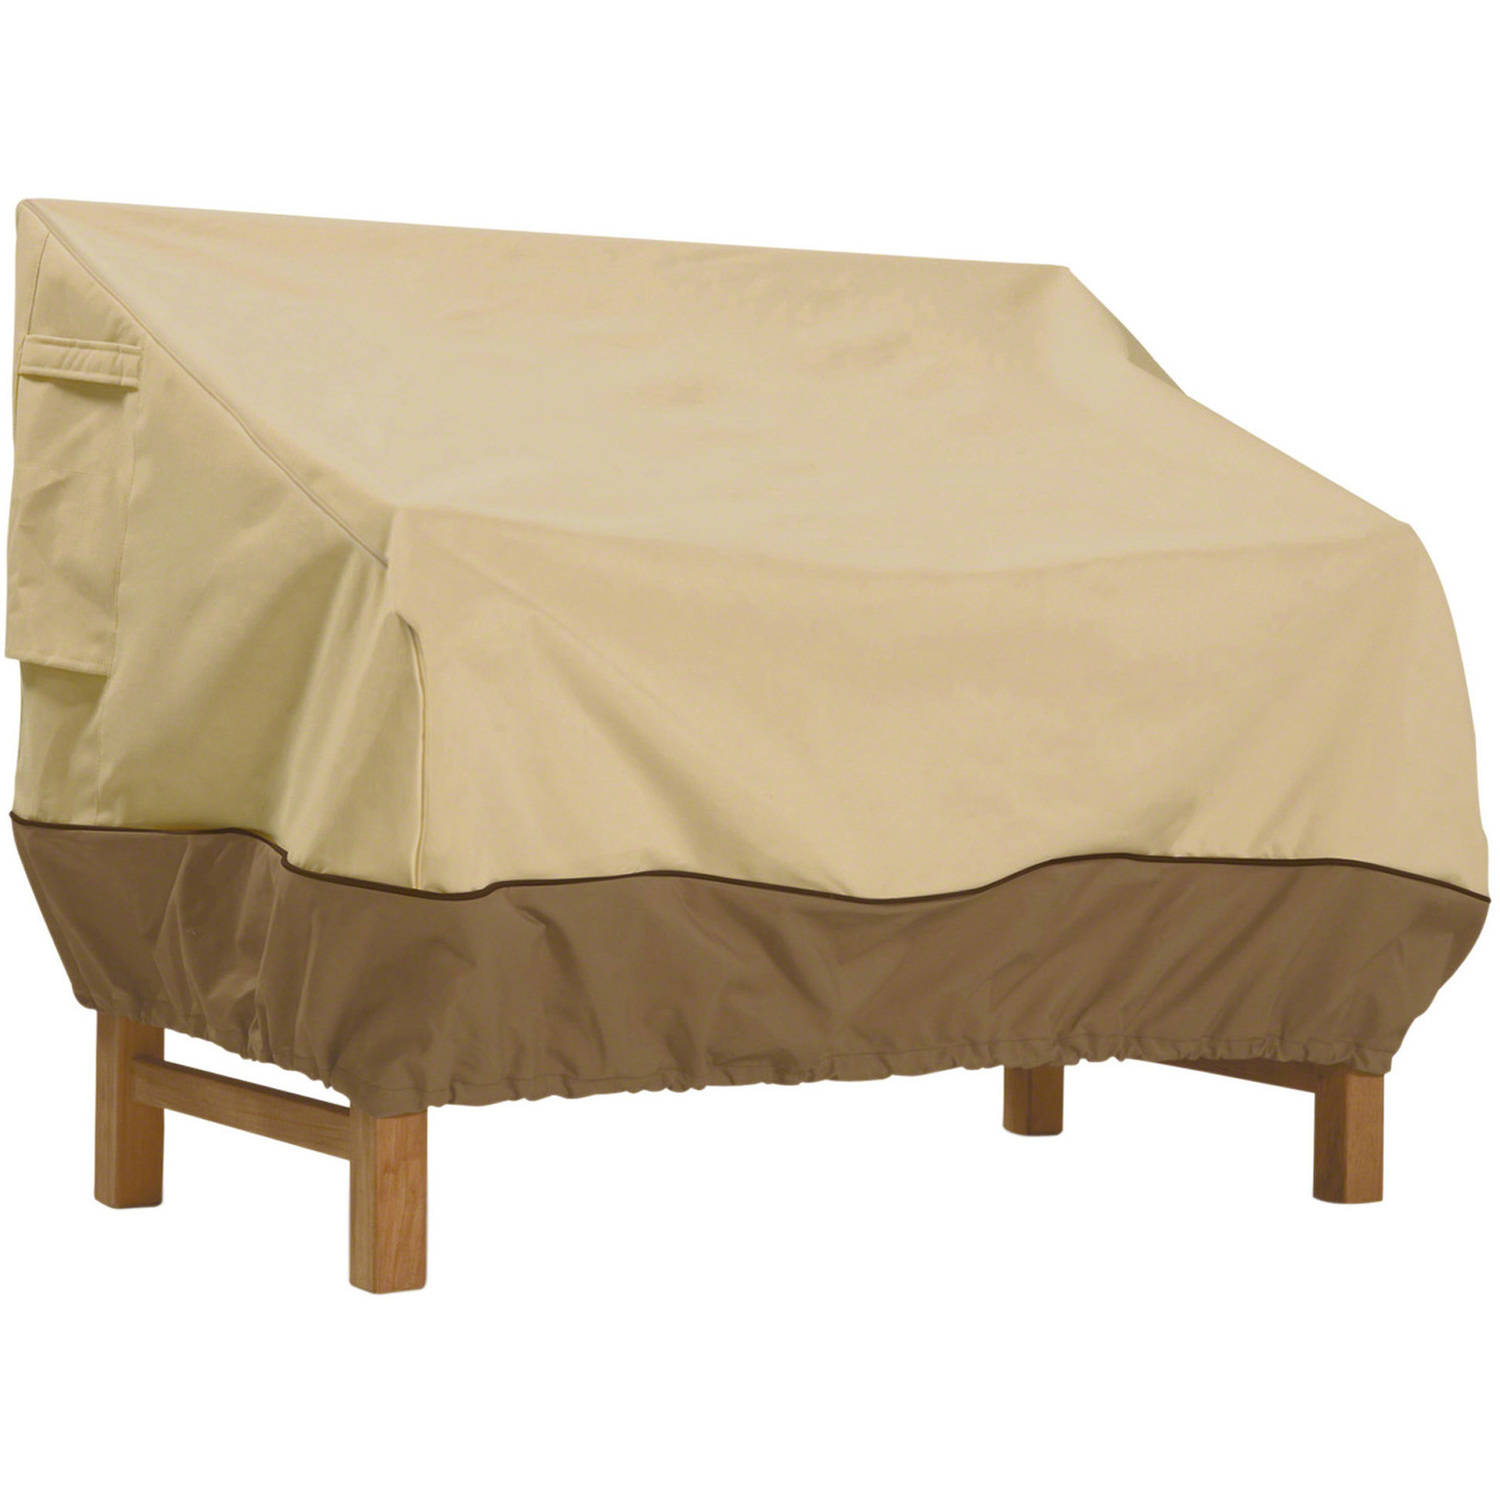 "Classic Accessories Veranda Patio Bench and Loveseat Furniture Storage Cover, Small, fits up to 58""L x 32.5""W"